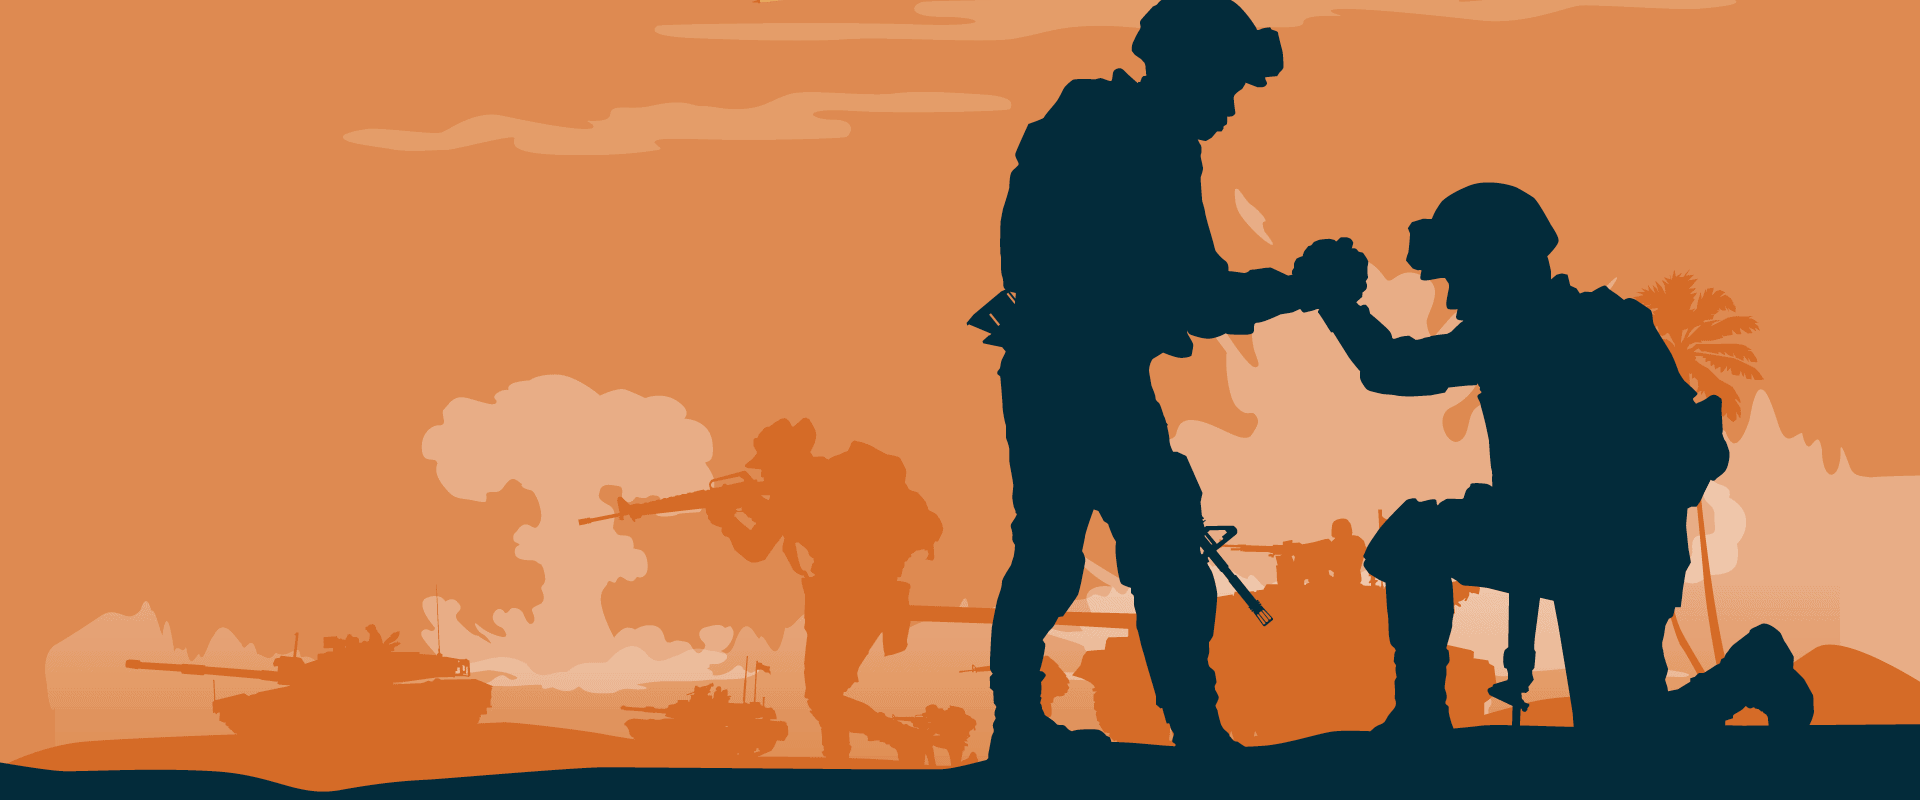 Military Service and Hearing Health: The NOISE Study(iamseki/shutterstock.com and S. Chanesman)